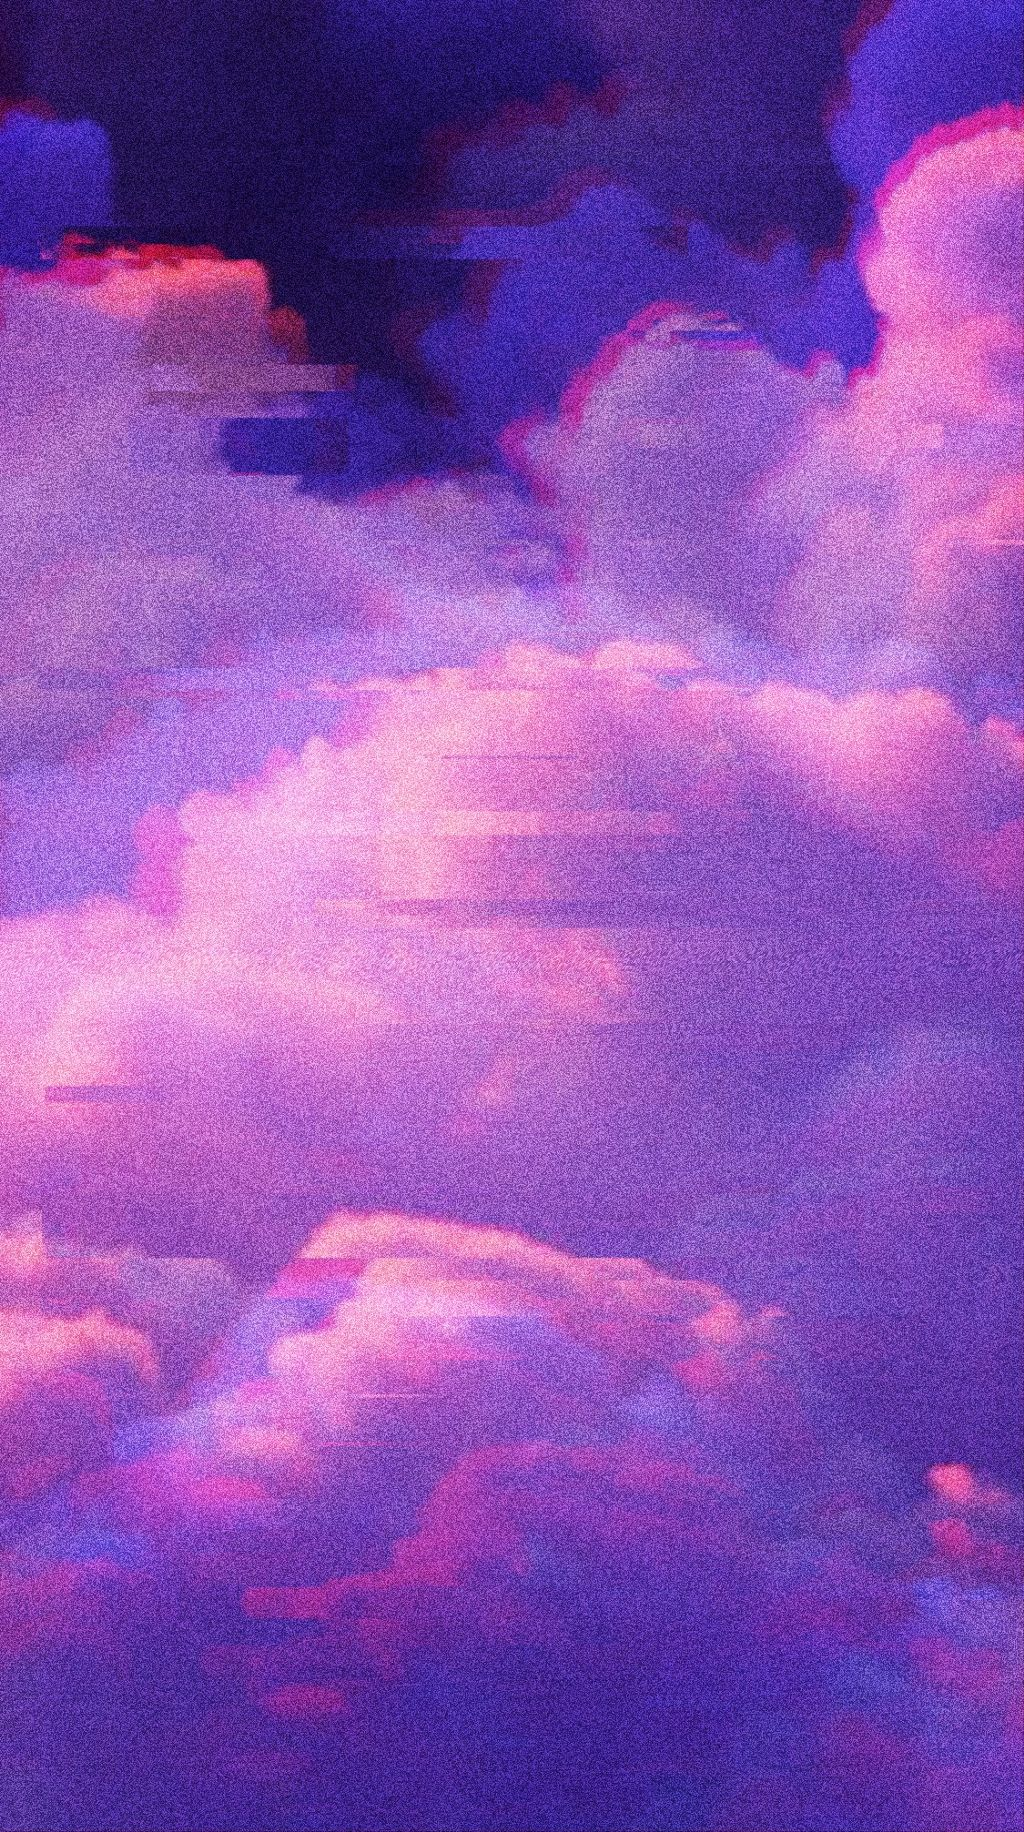 Free Download Free Aesthetic Glitch Cloud Background